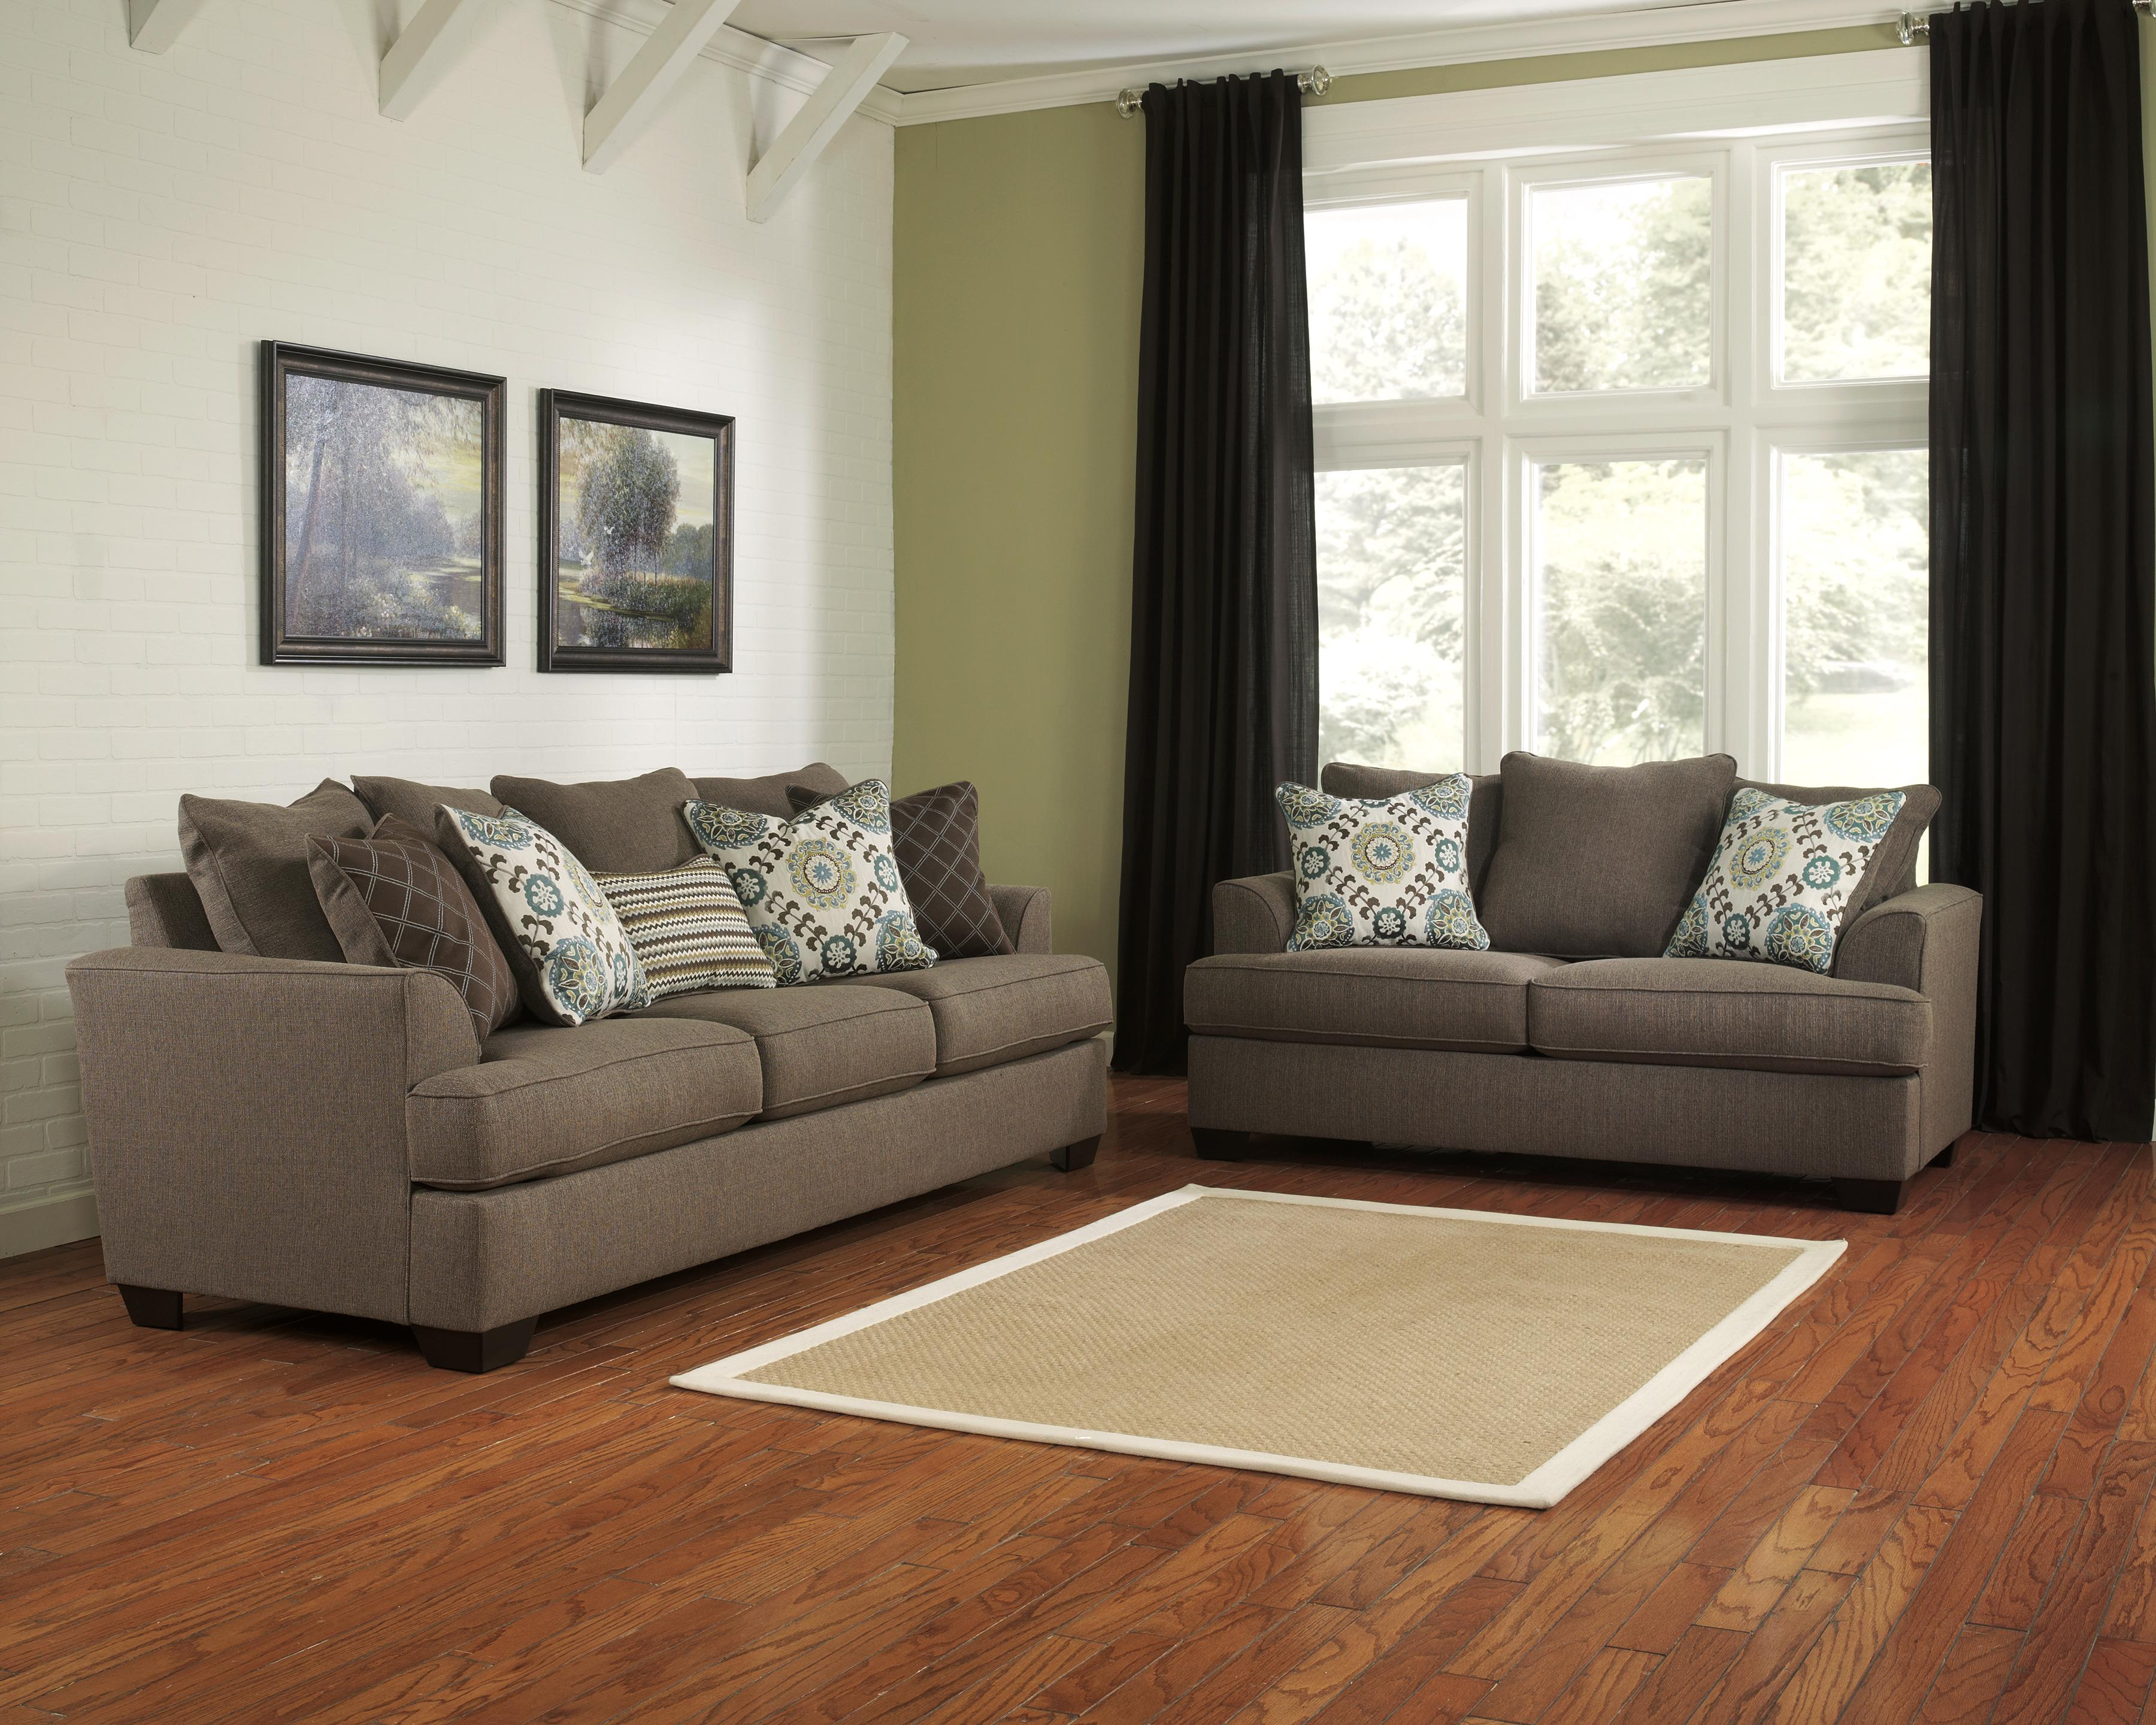 Breathtaking ashley furniture columbus ga for living room ideas with ashley furniture columbus ohio